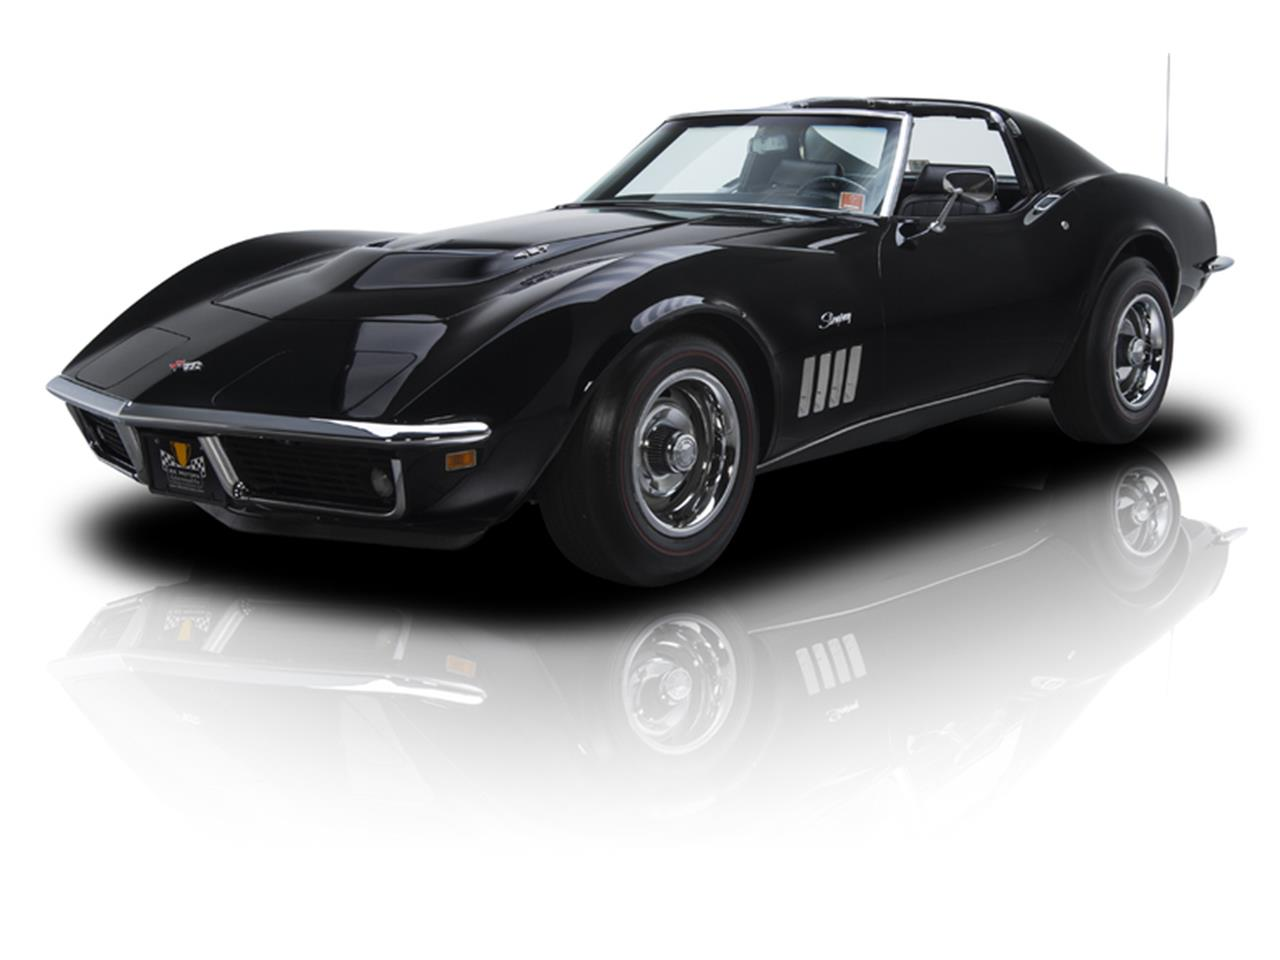 Corvette Stingray 1969 >> 1969 Chevrolet Corvette Stingray In Charlotte North Carolina